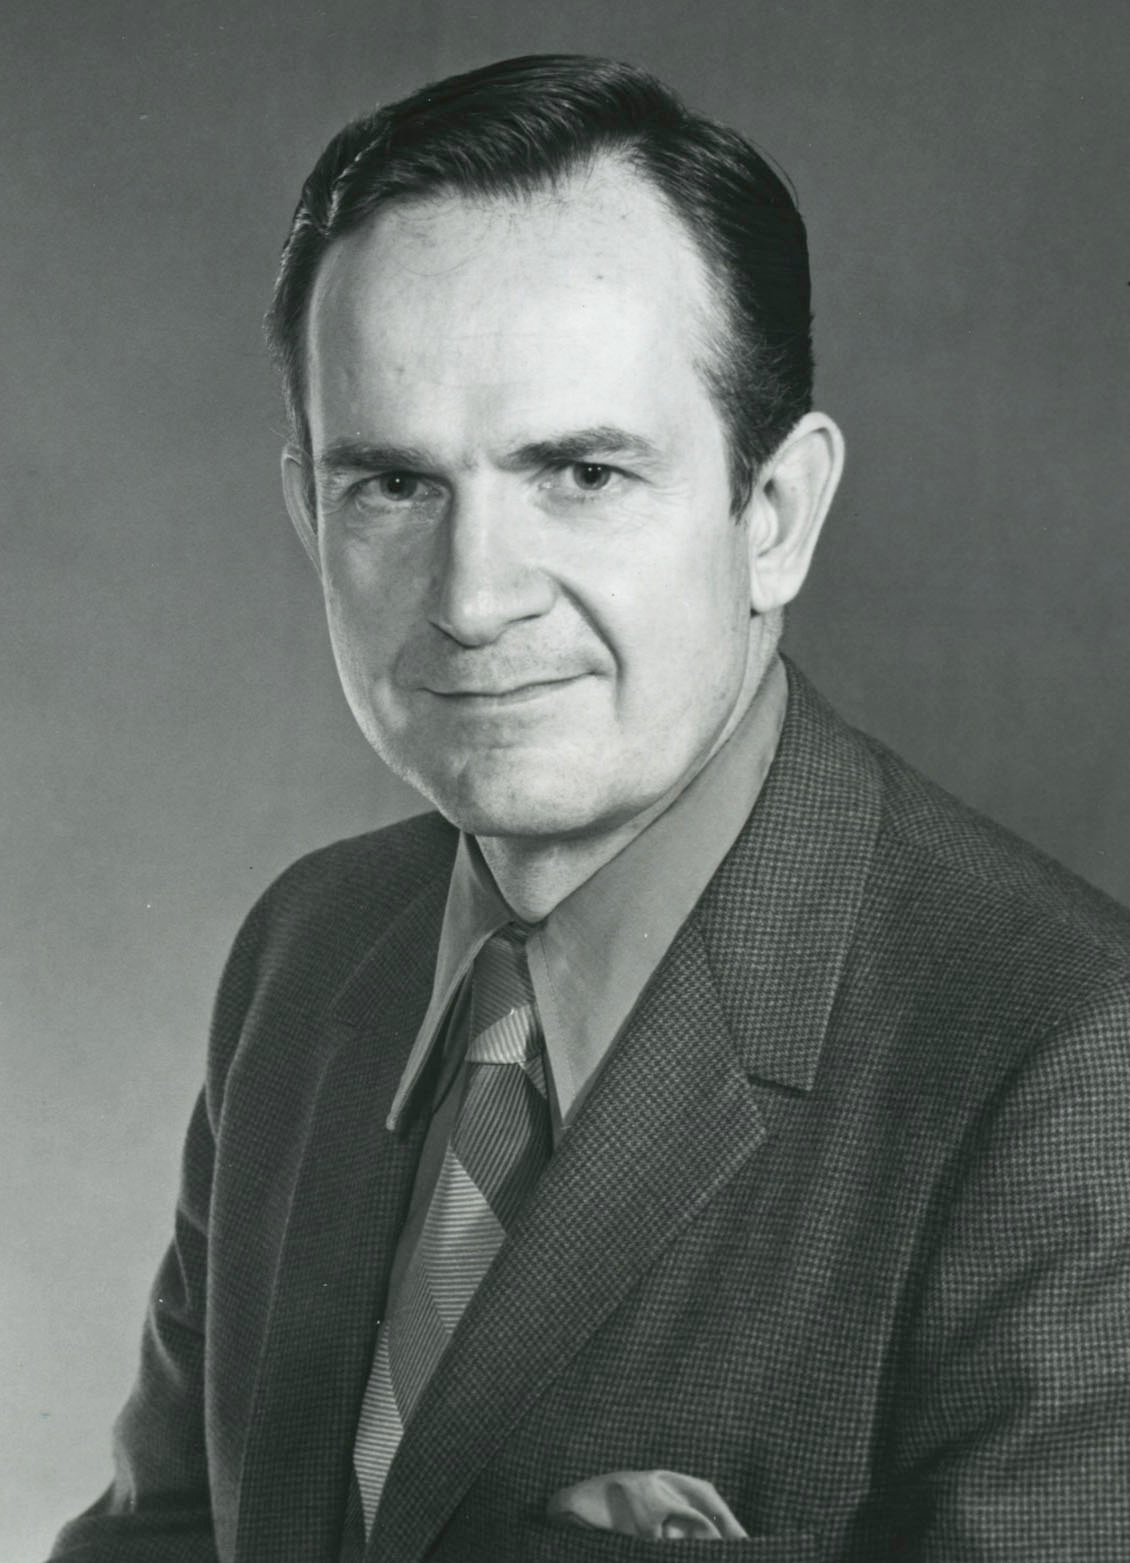 The Rev. Curtis A. Chambers. A UMNS file photo.